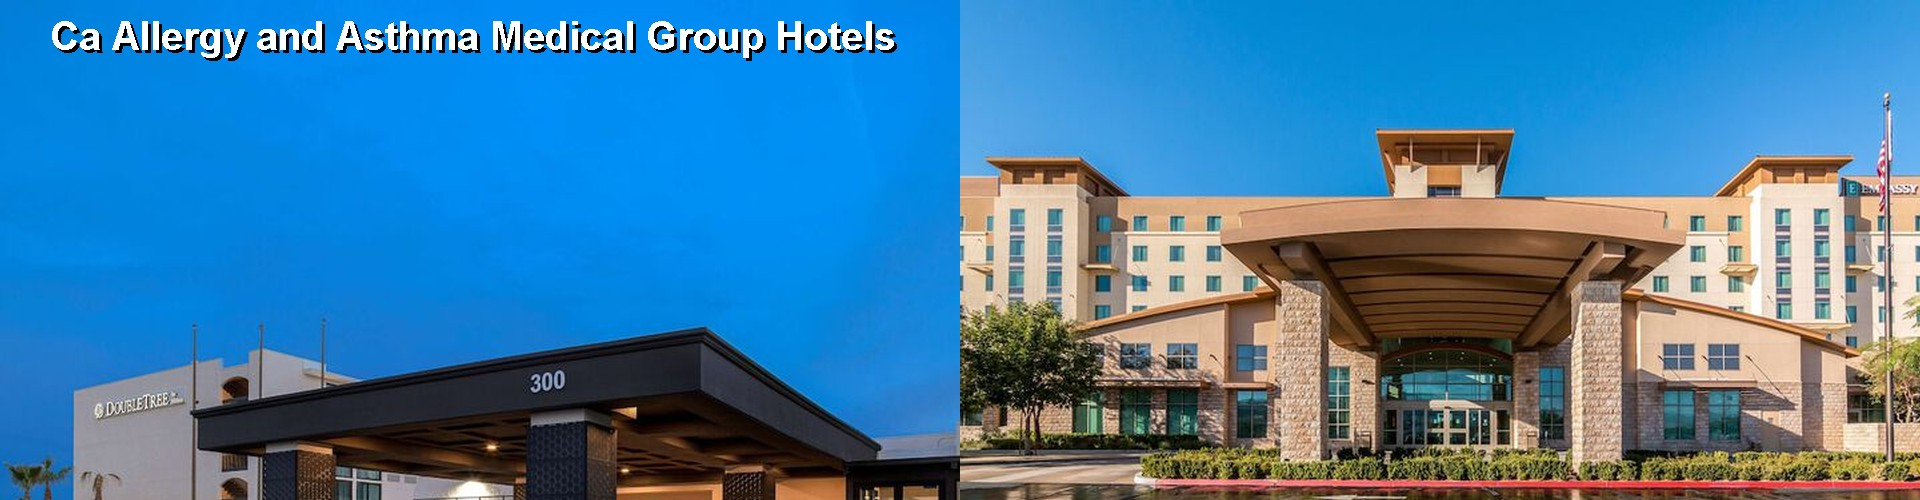 5 Best Hotels near Ca Allergy and Asthma Medical Group